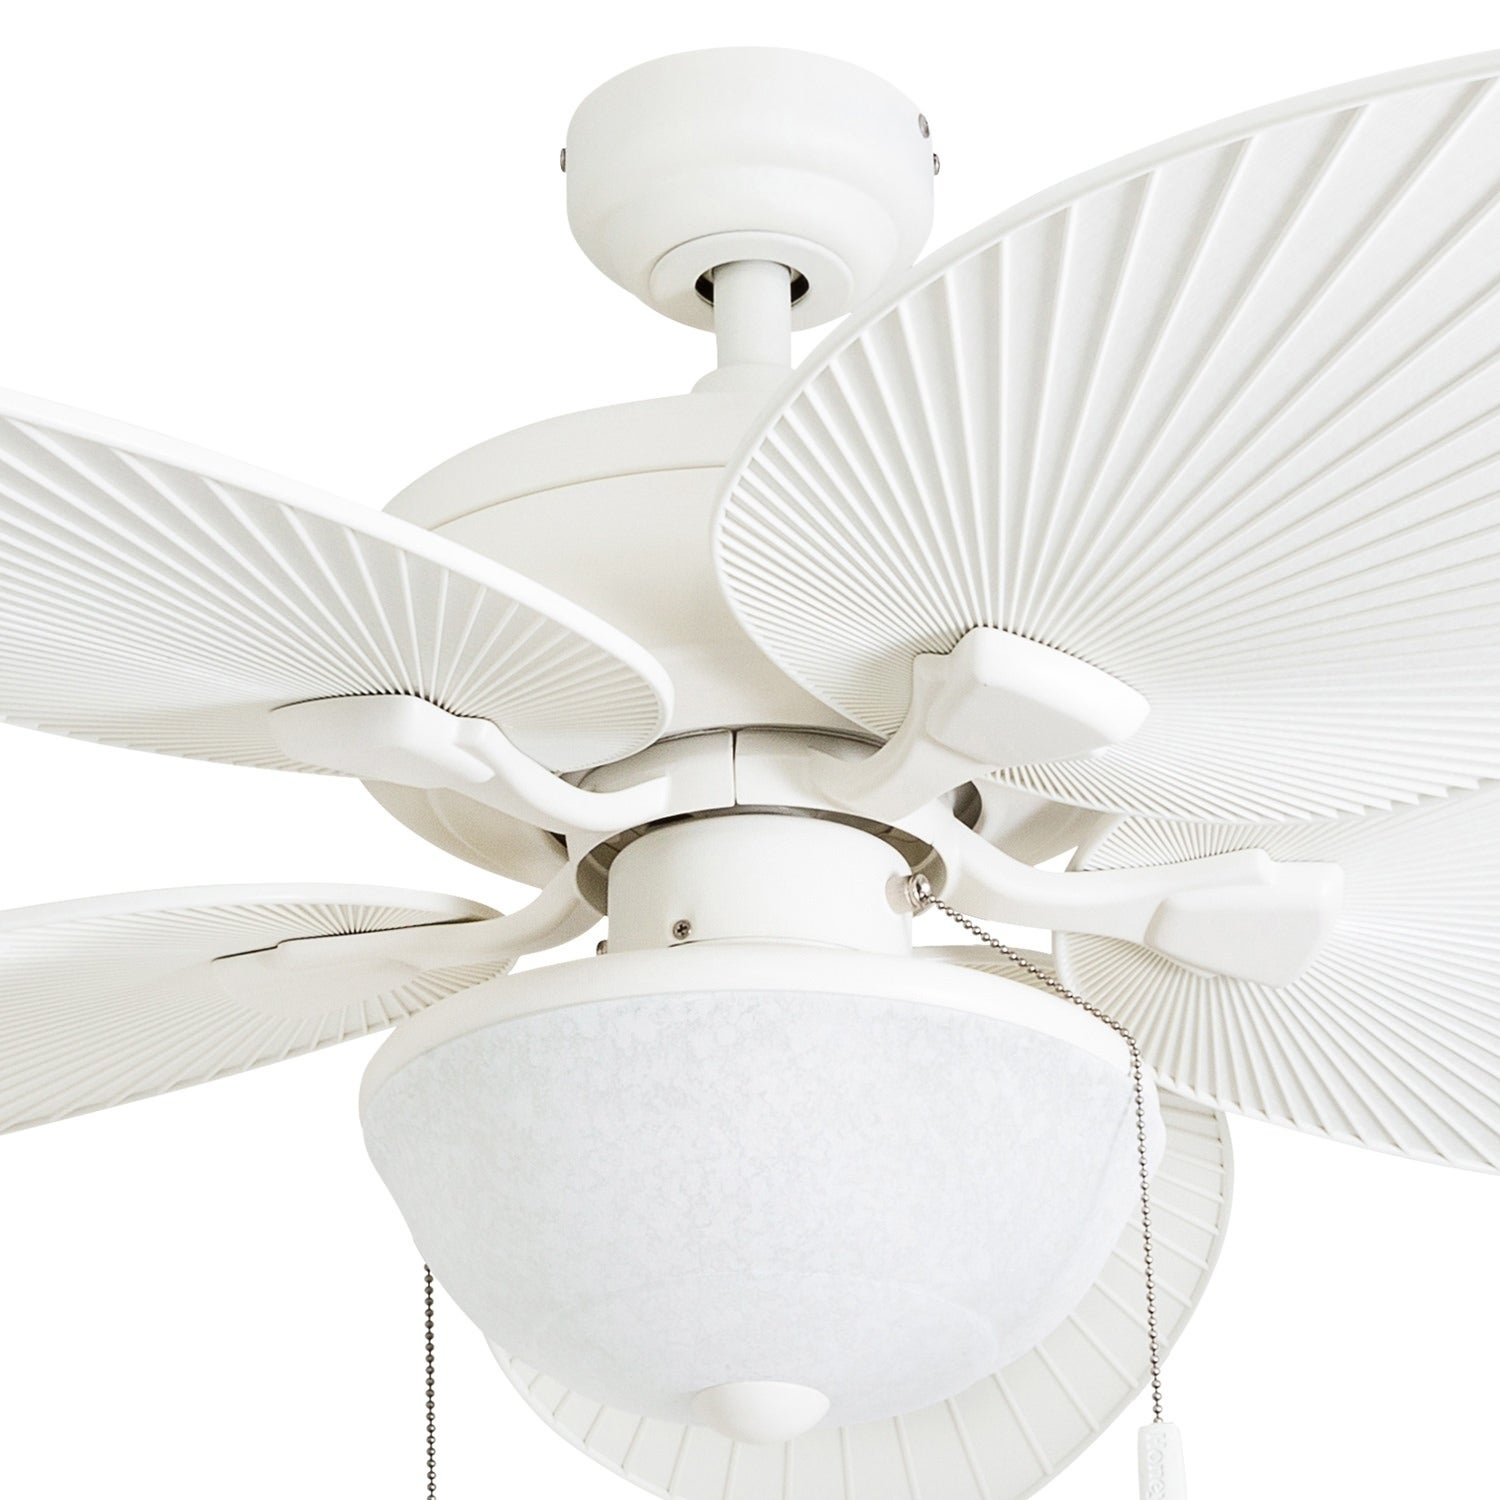 Honeywell Inland Breeze 52 White Outdoor Led Ceiling Fan With Light Plastic Wicker Blades Free Shipping Today 22344595